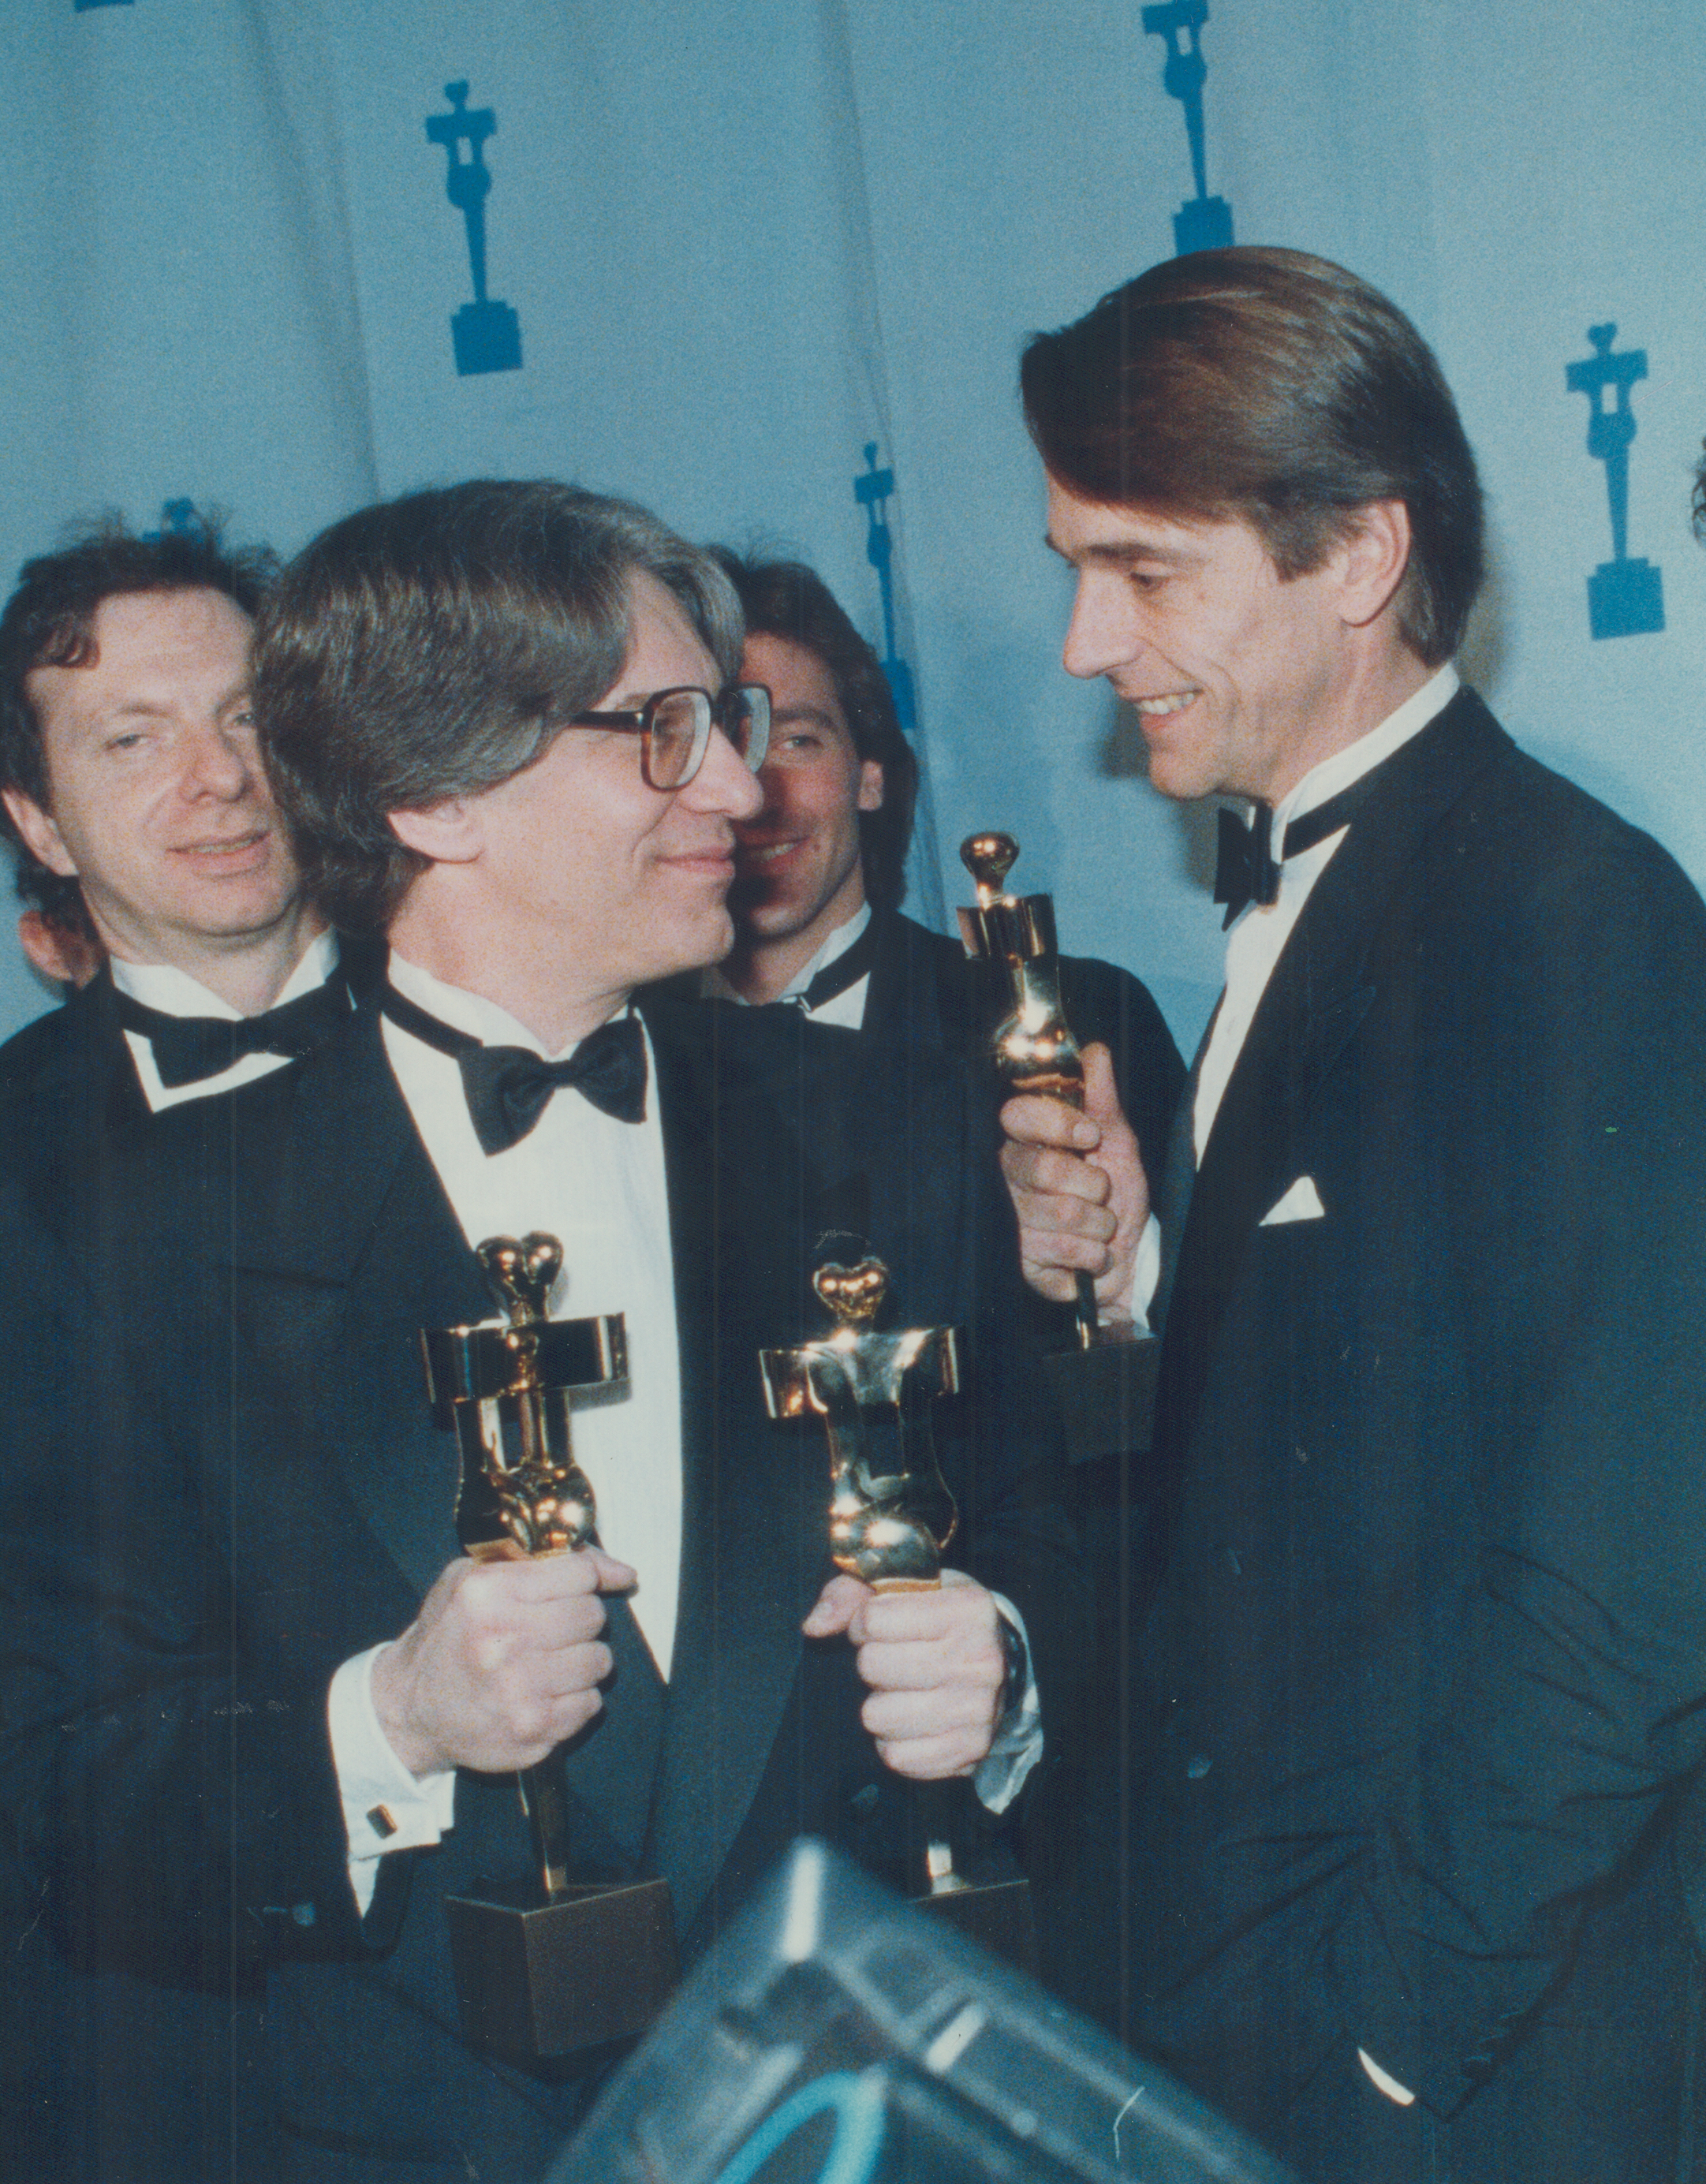 David Cronenberg, left, named best director last night, shares a moment of triumph backstage with Je